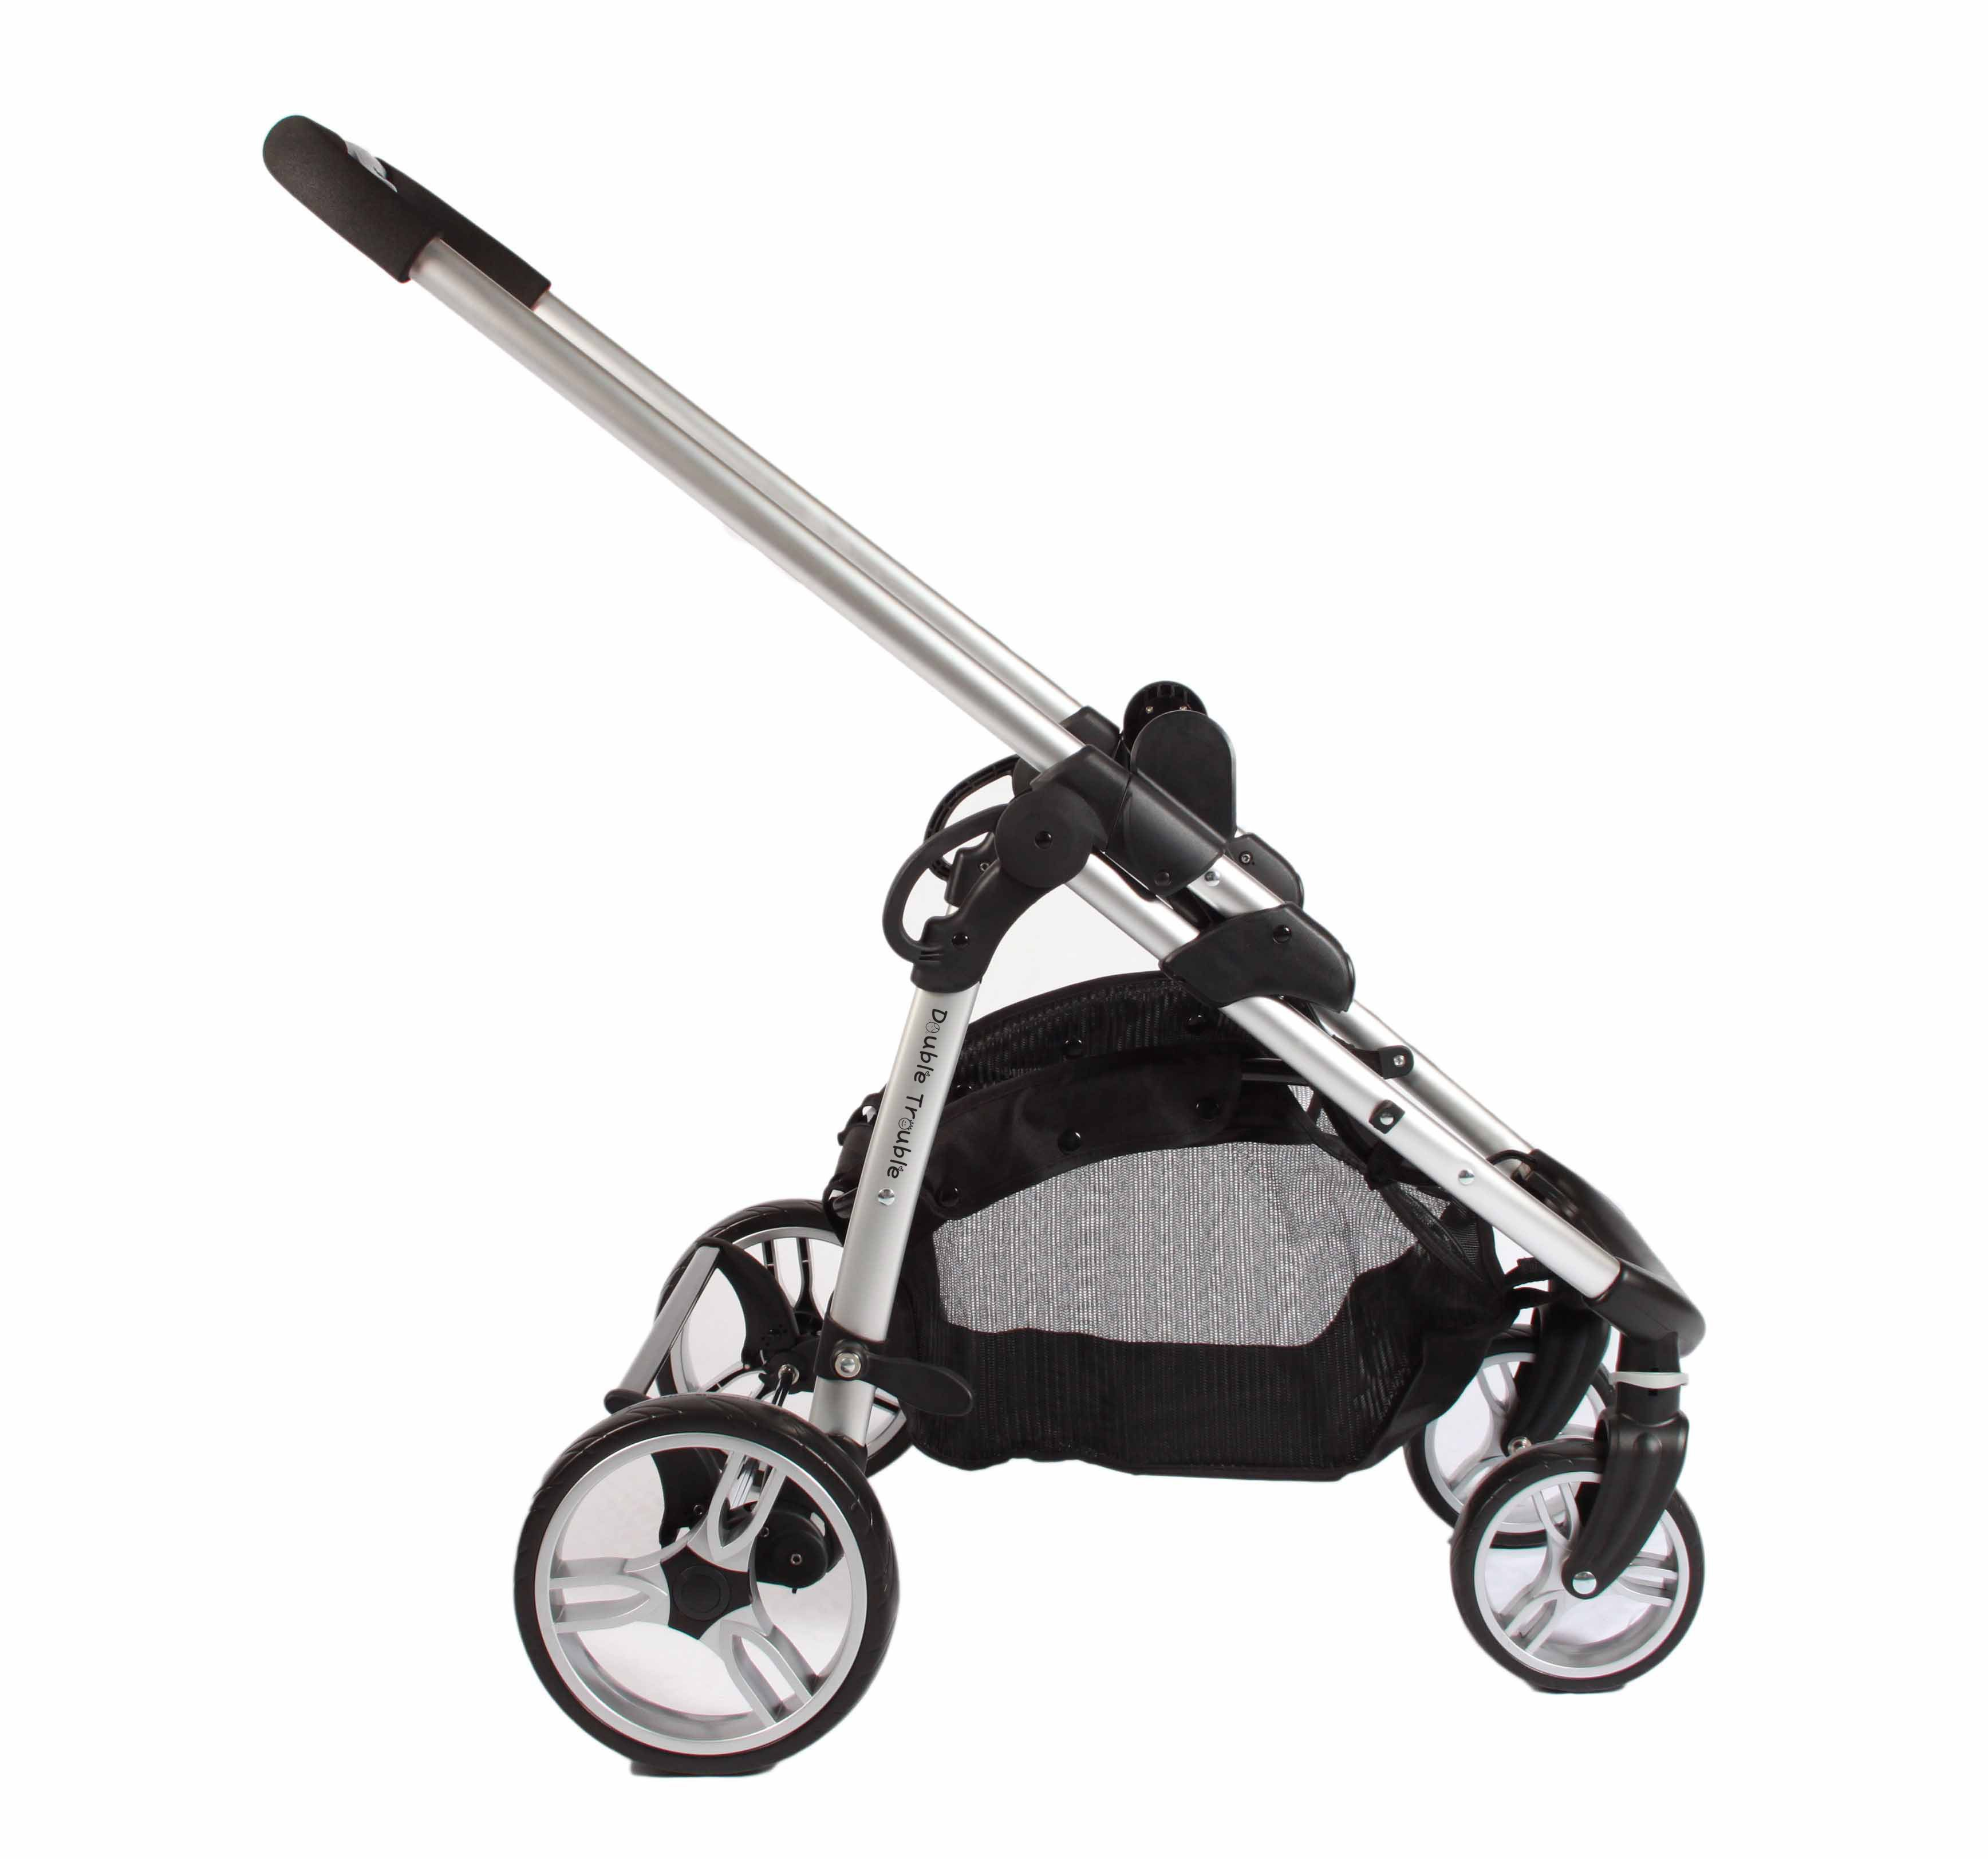 Side view of single pram frame (with shopping basket